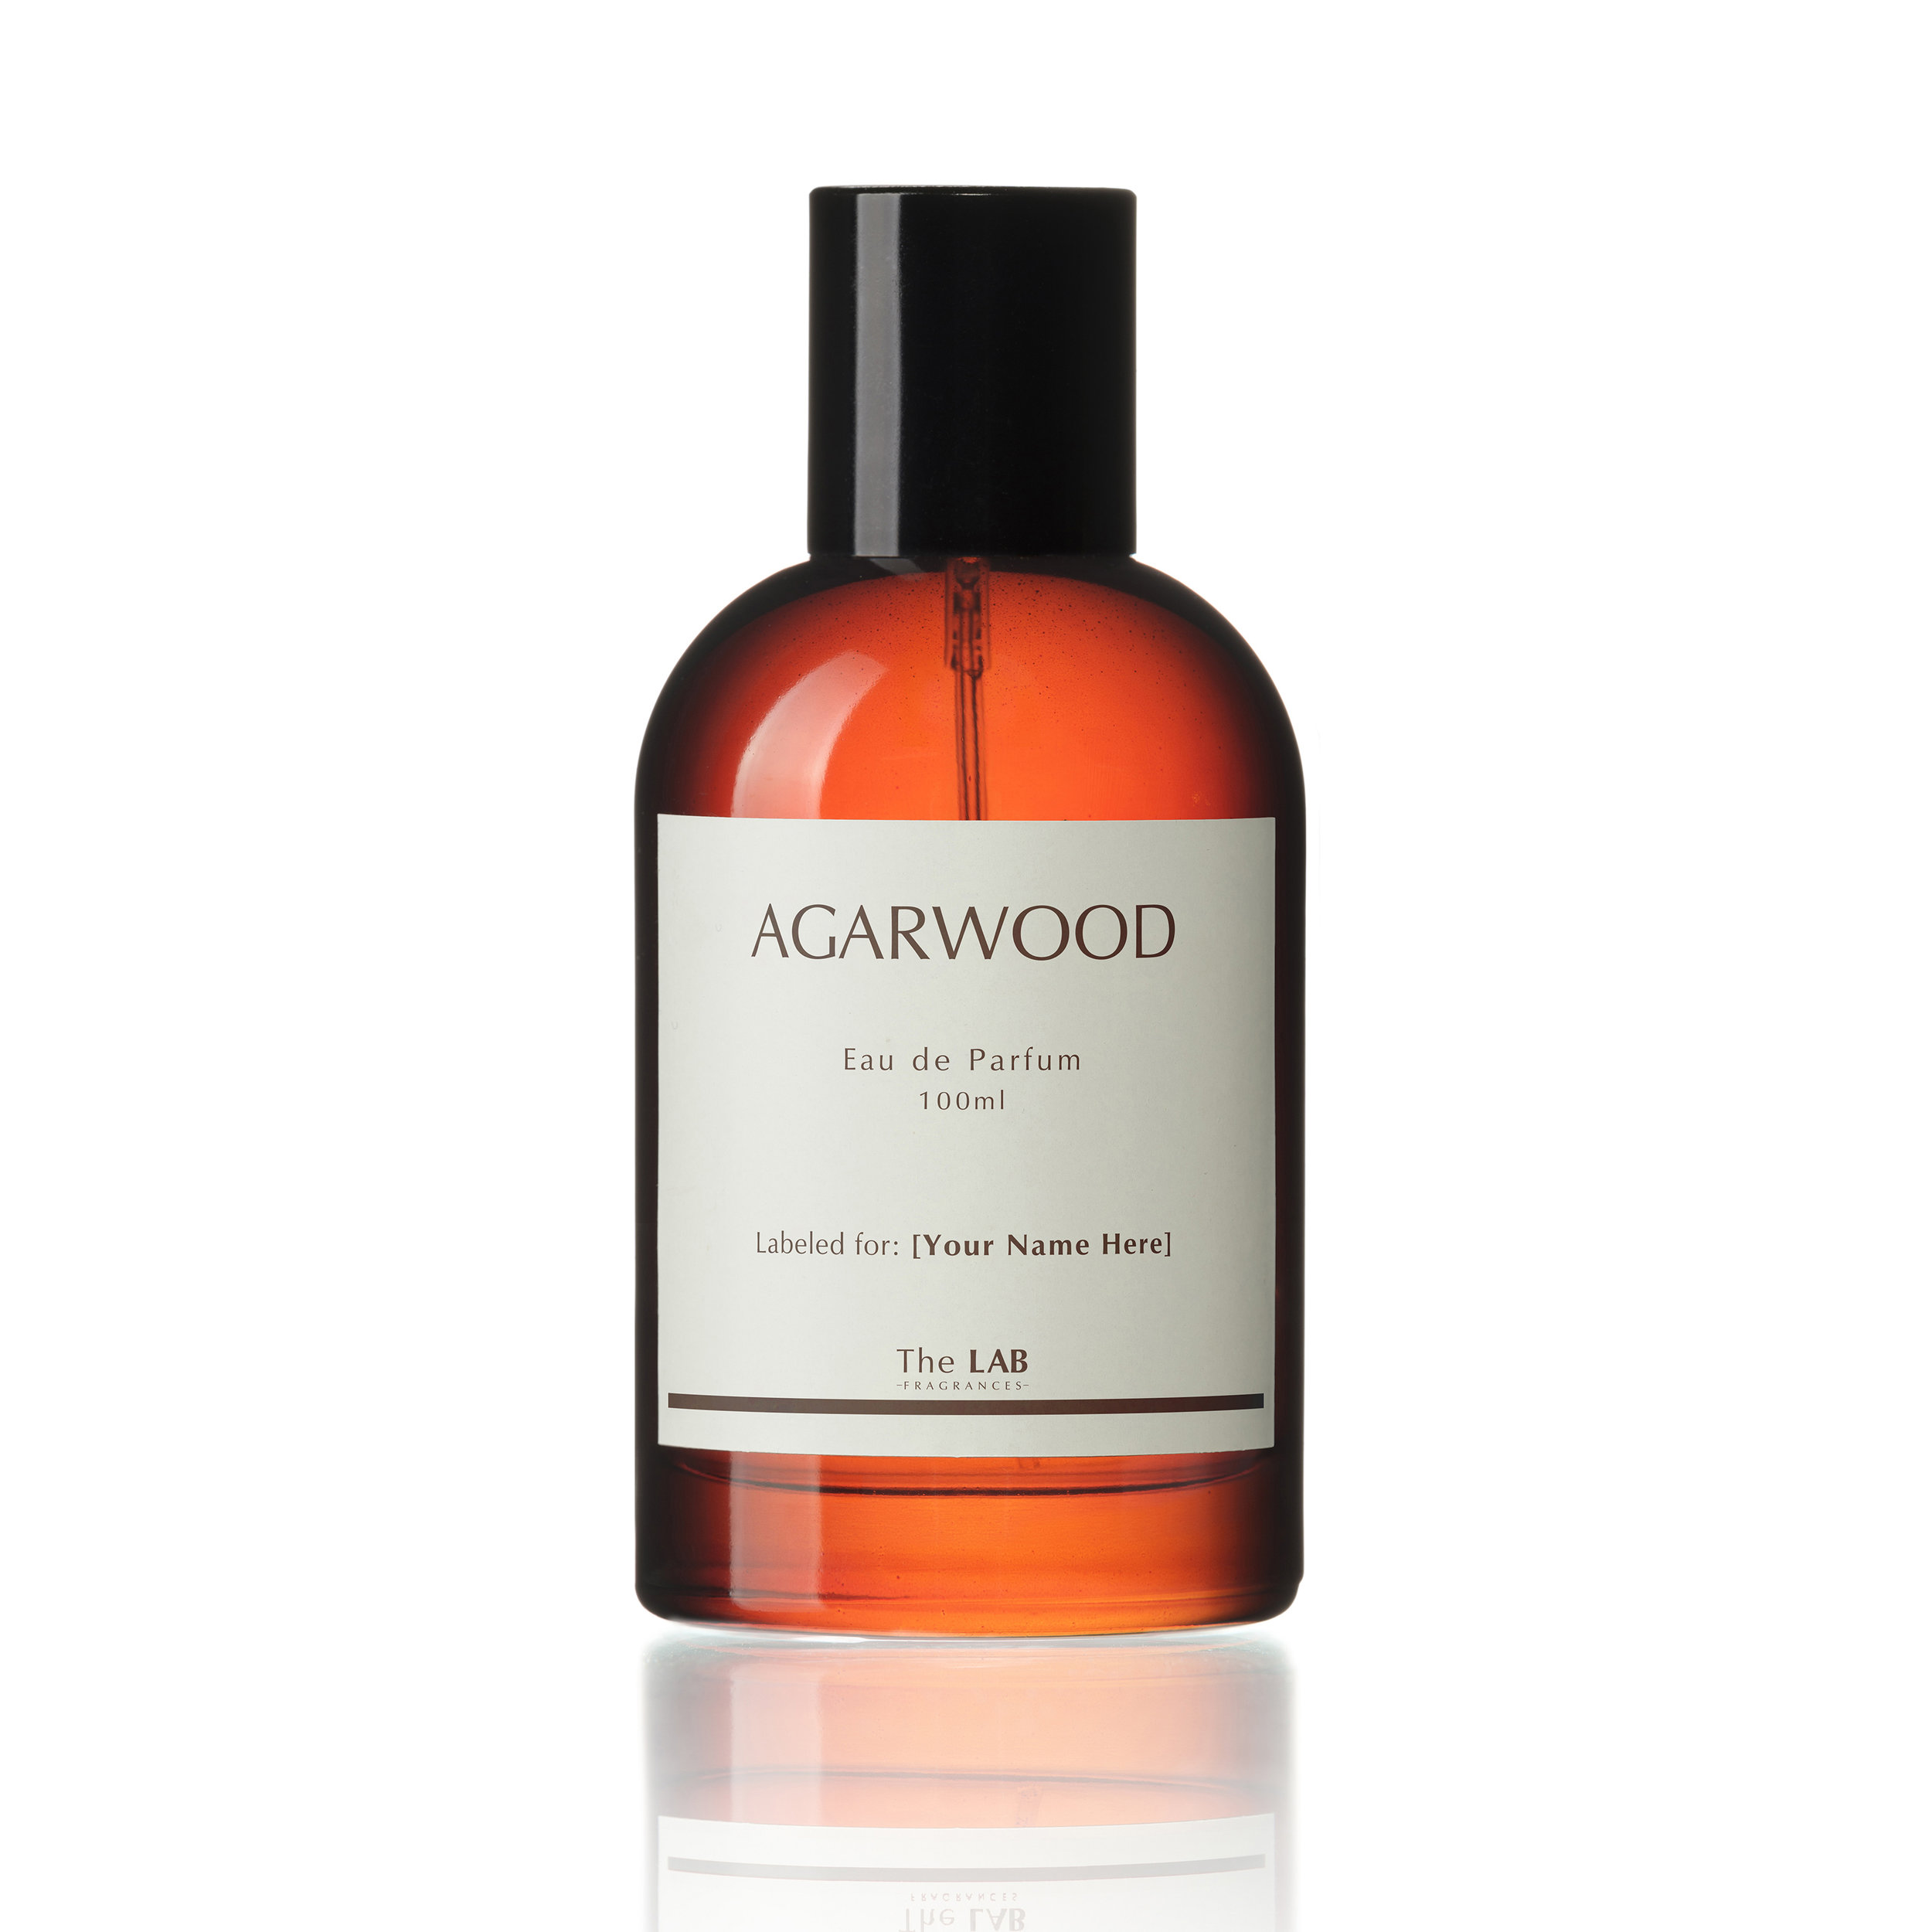 AGARWOOD 100ml#S$148